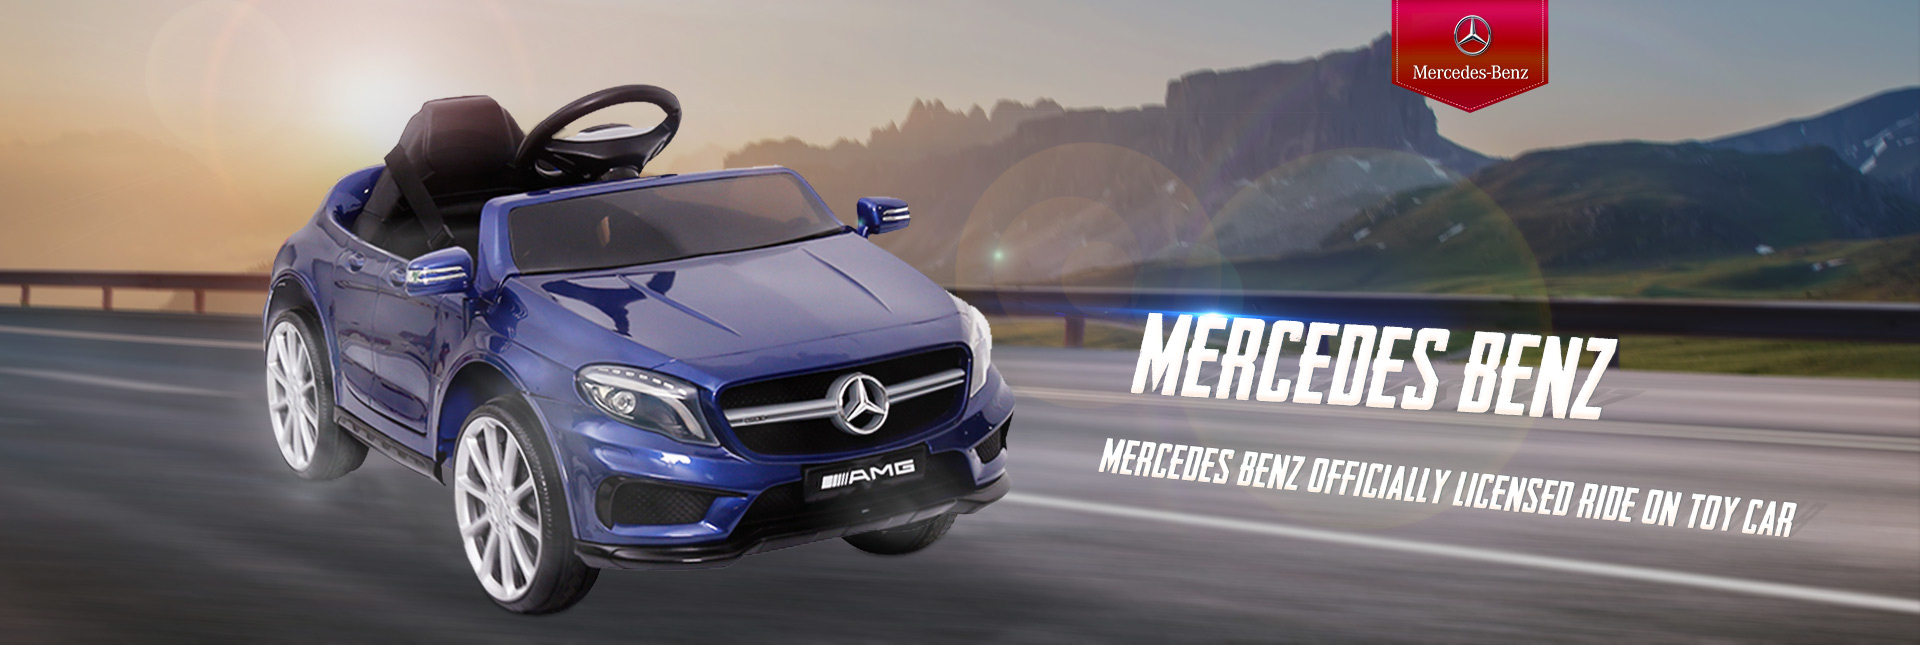 Mercedes Benz Officially Licensed Ride On Toy Car